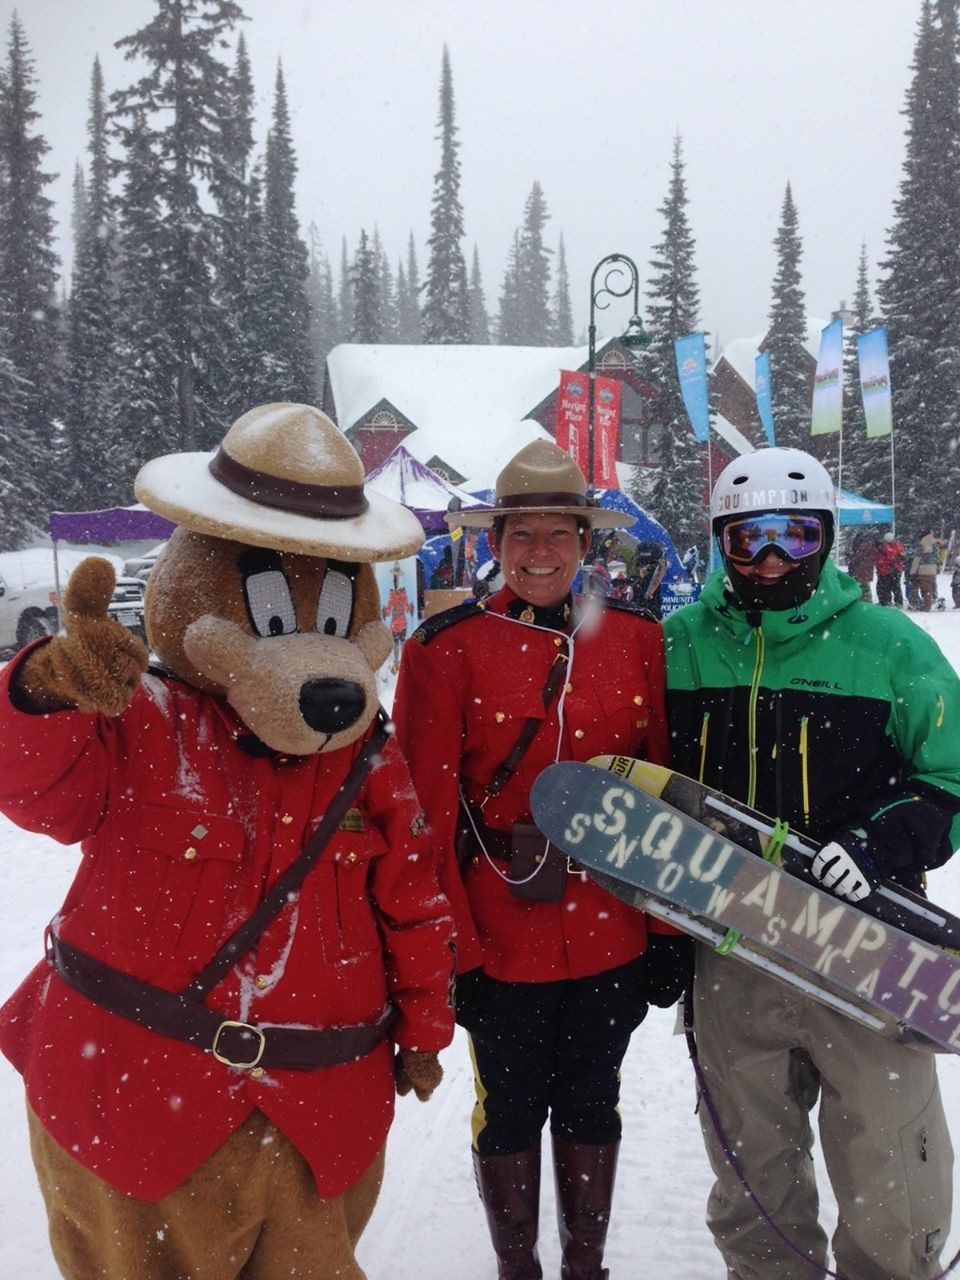 Me and the ever present RCMP full of smiles... Snowskating is NOT a crime!